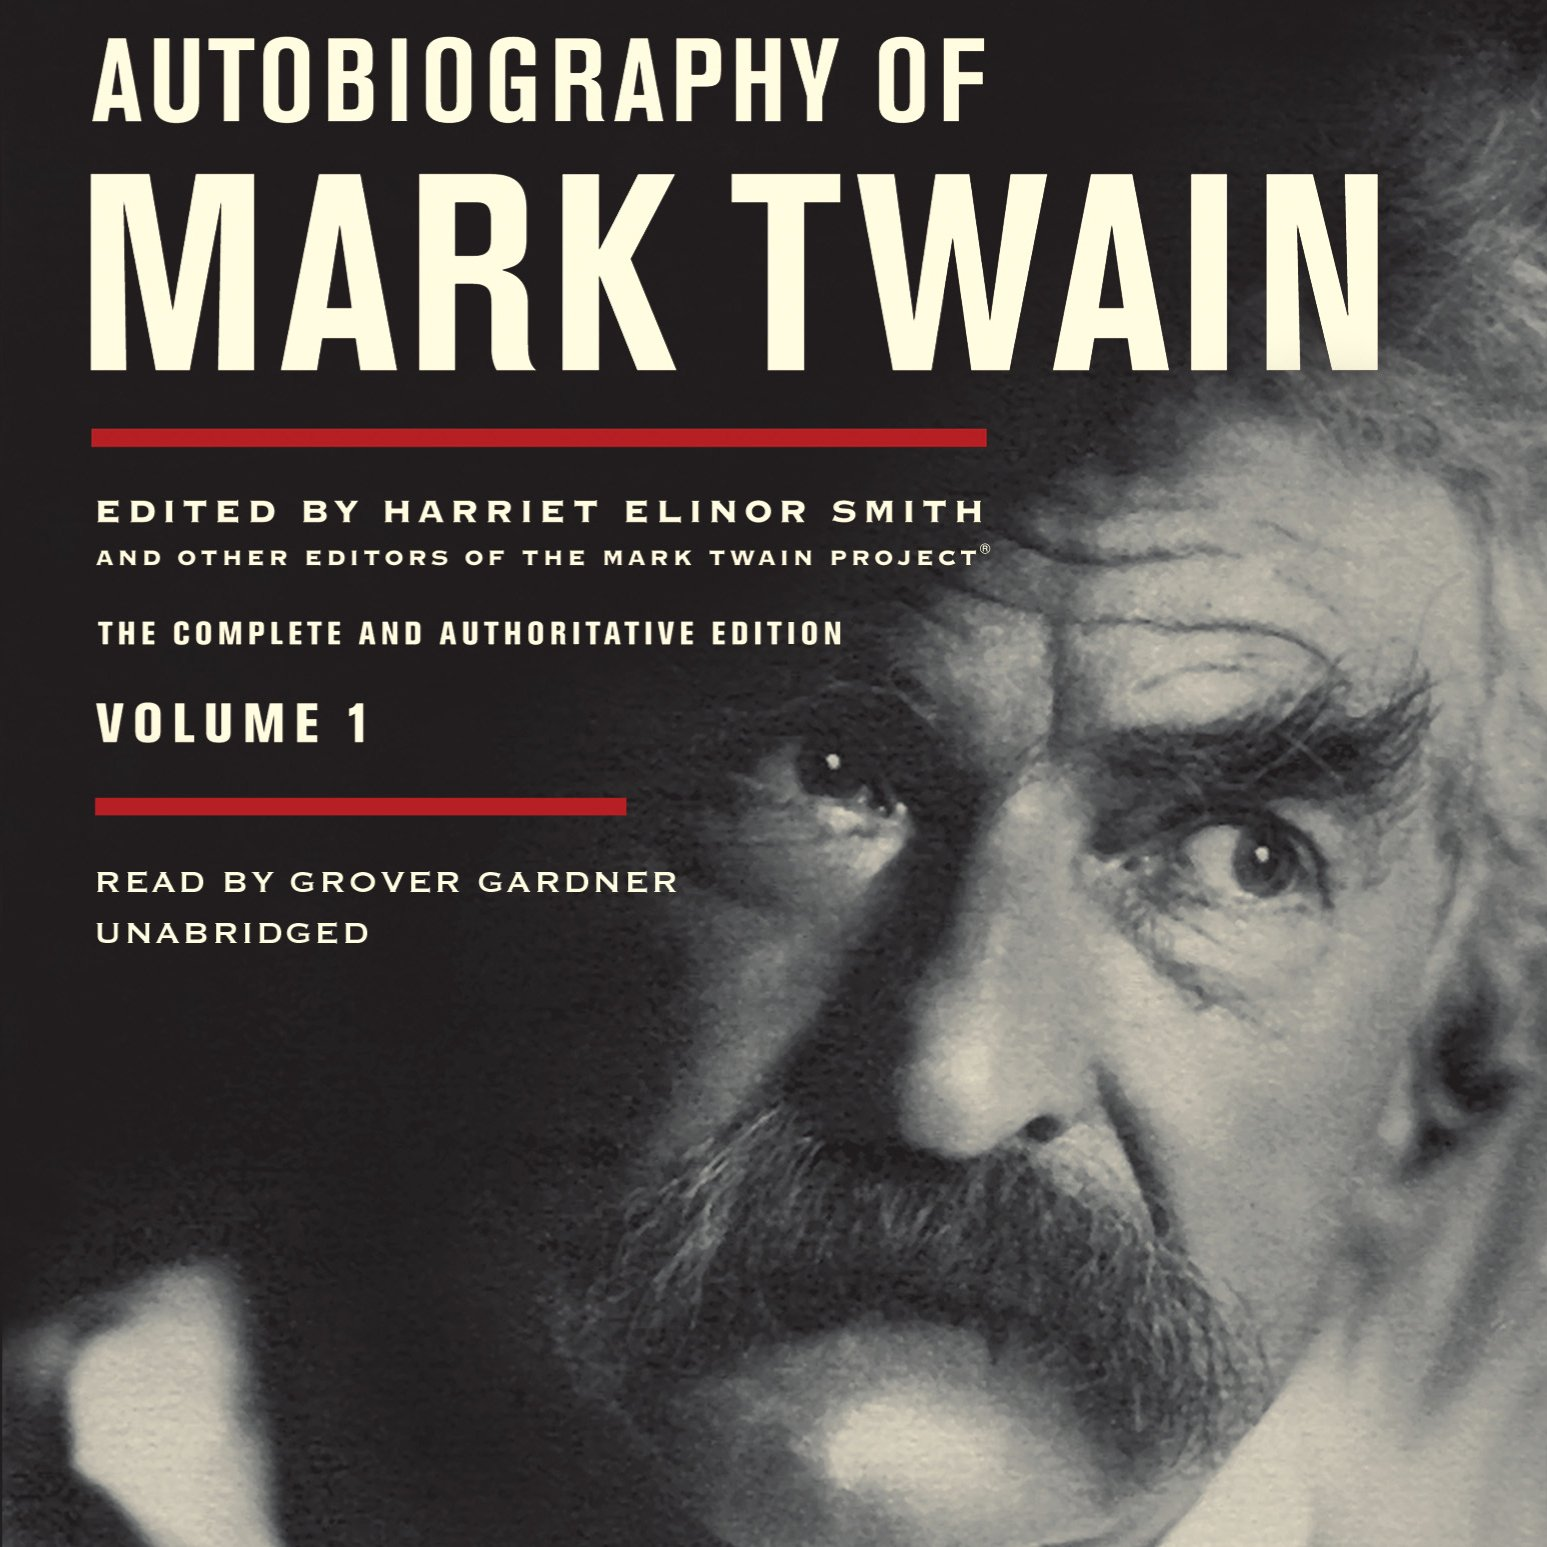 Autobiography of Mark Twain, Vol. 1: The Complete and Authoritative Edition*